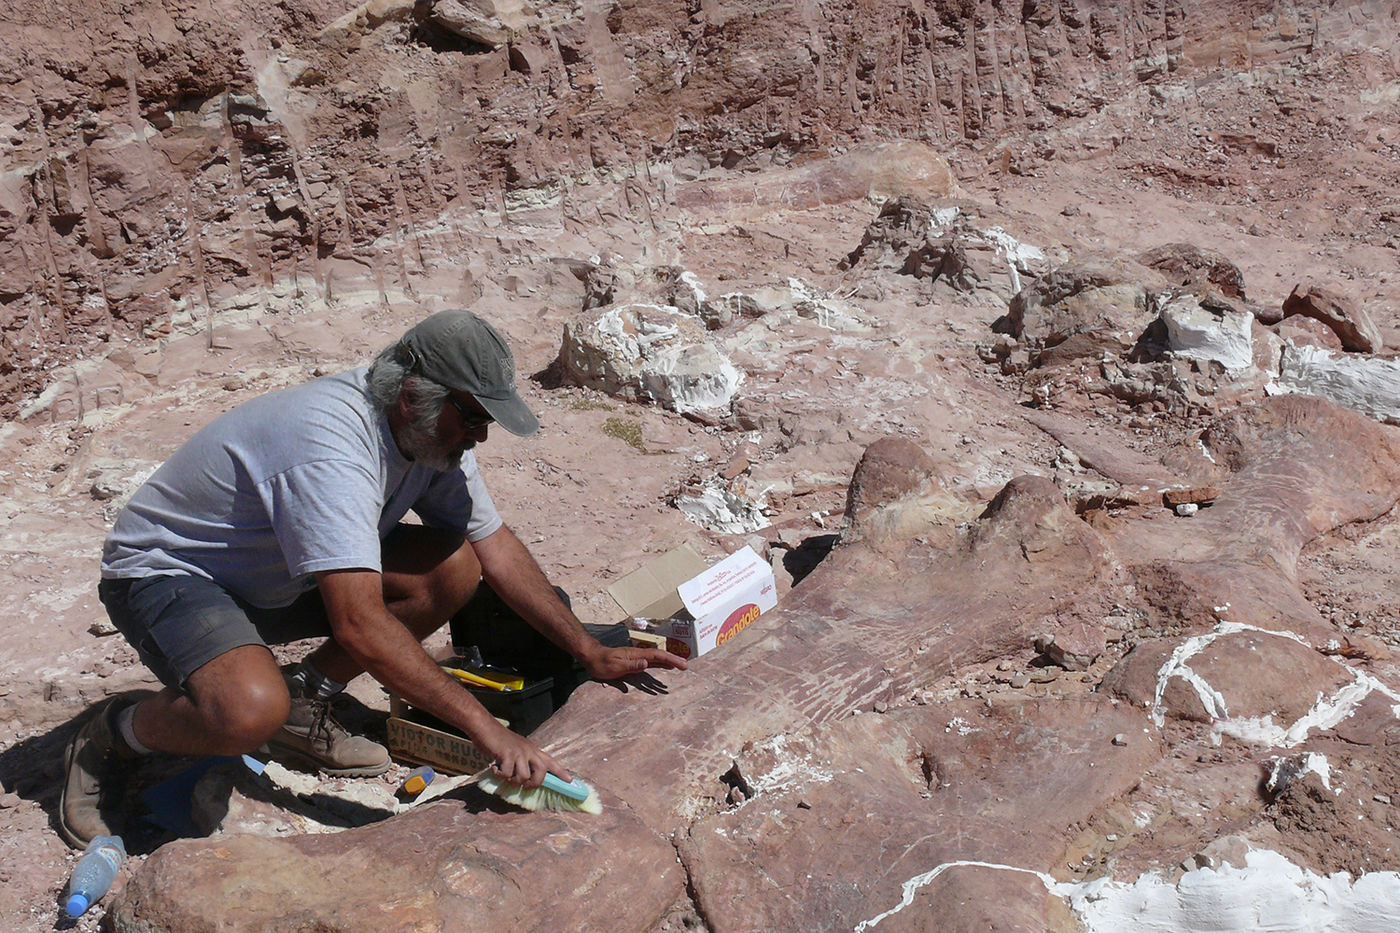 A scientist excavates a titanosaur fossil in Argentina. He crouches over a fossilized bone and uses a brush to remove dirt before it's wrapped in a plaster field jacket.